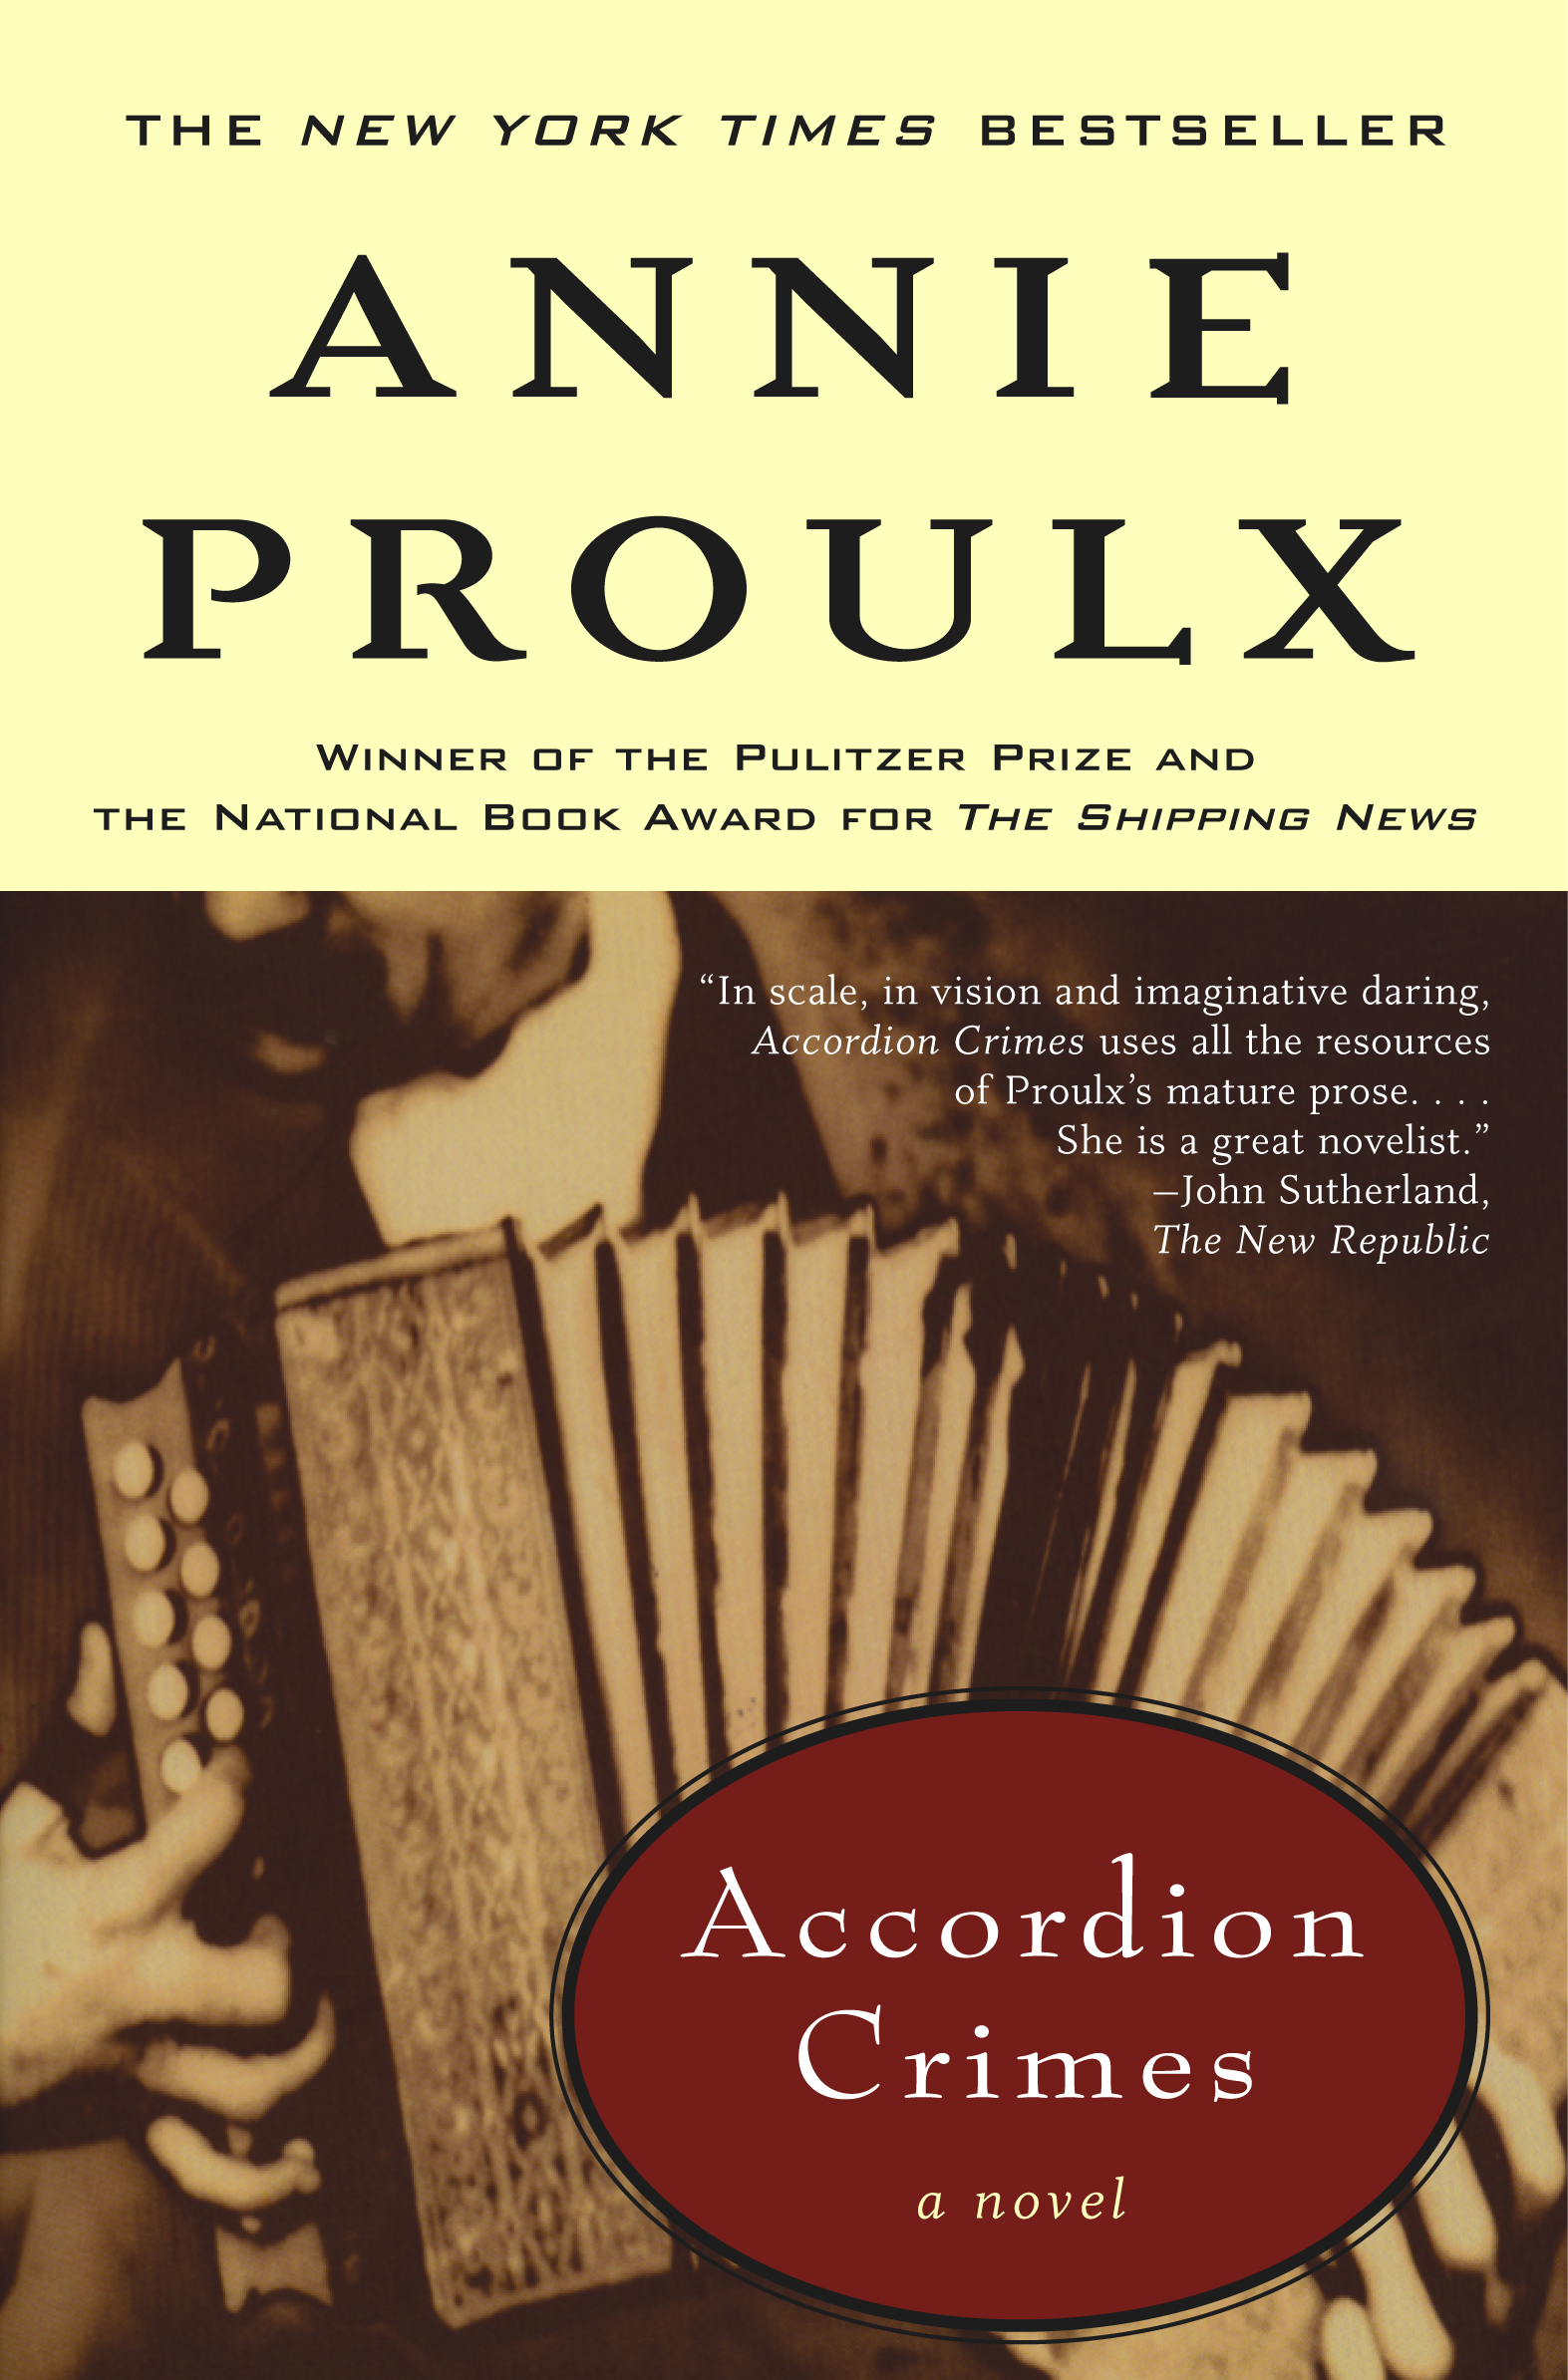 an overview of the novel accordion crimes by e annie proulx Focus on franco-american women and their  accordion crimes  annie proulx, e annie proulx  faucher's novel explores the trials and tribulations of.